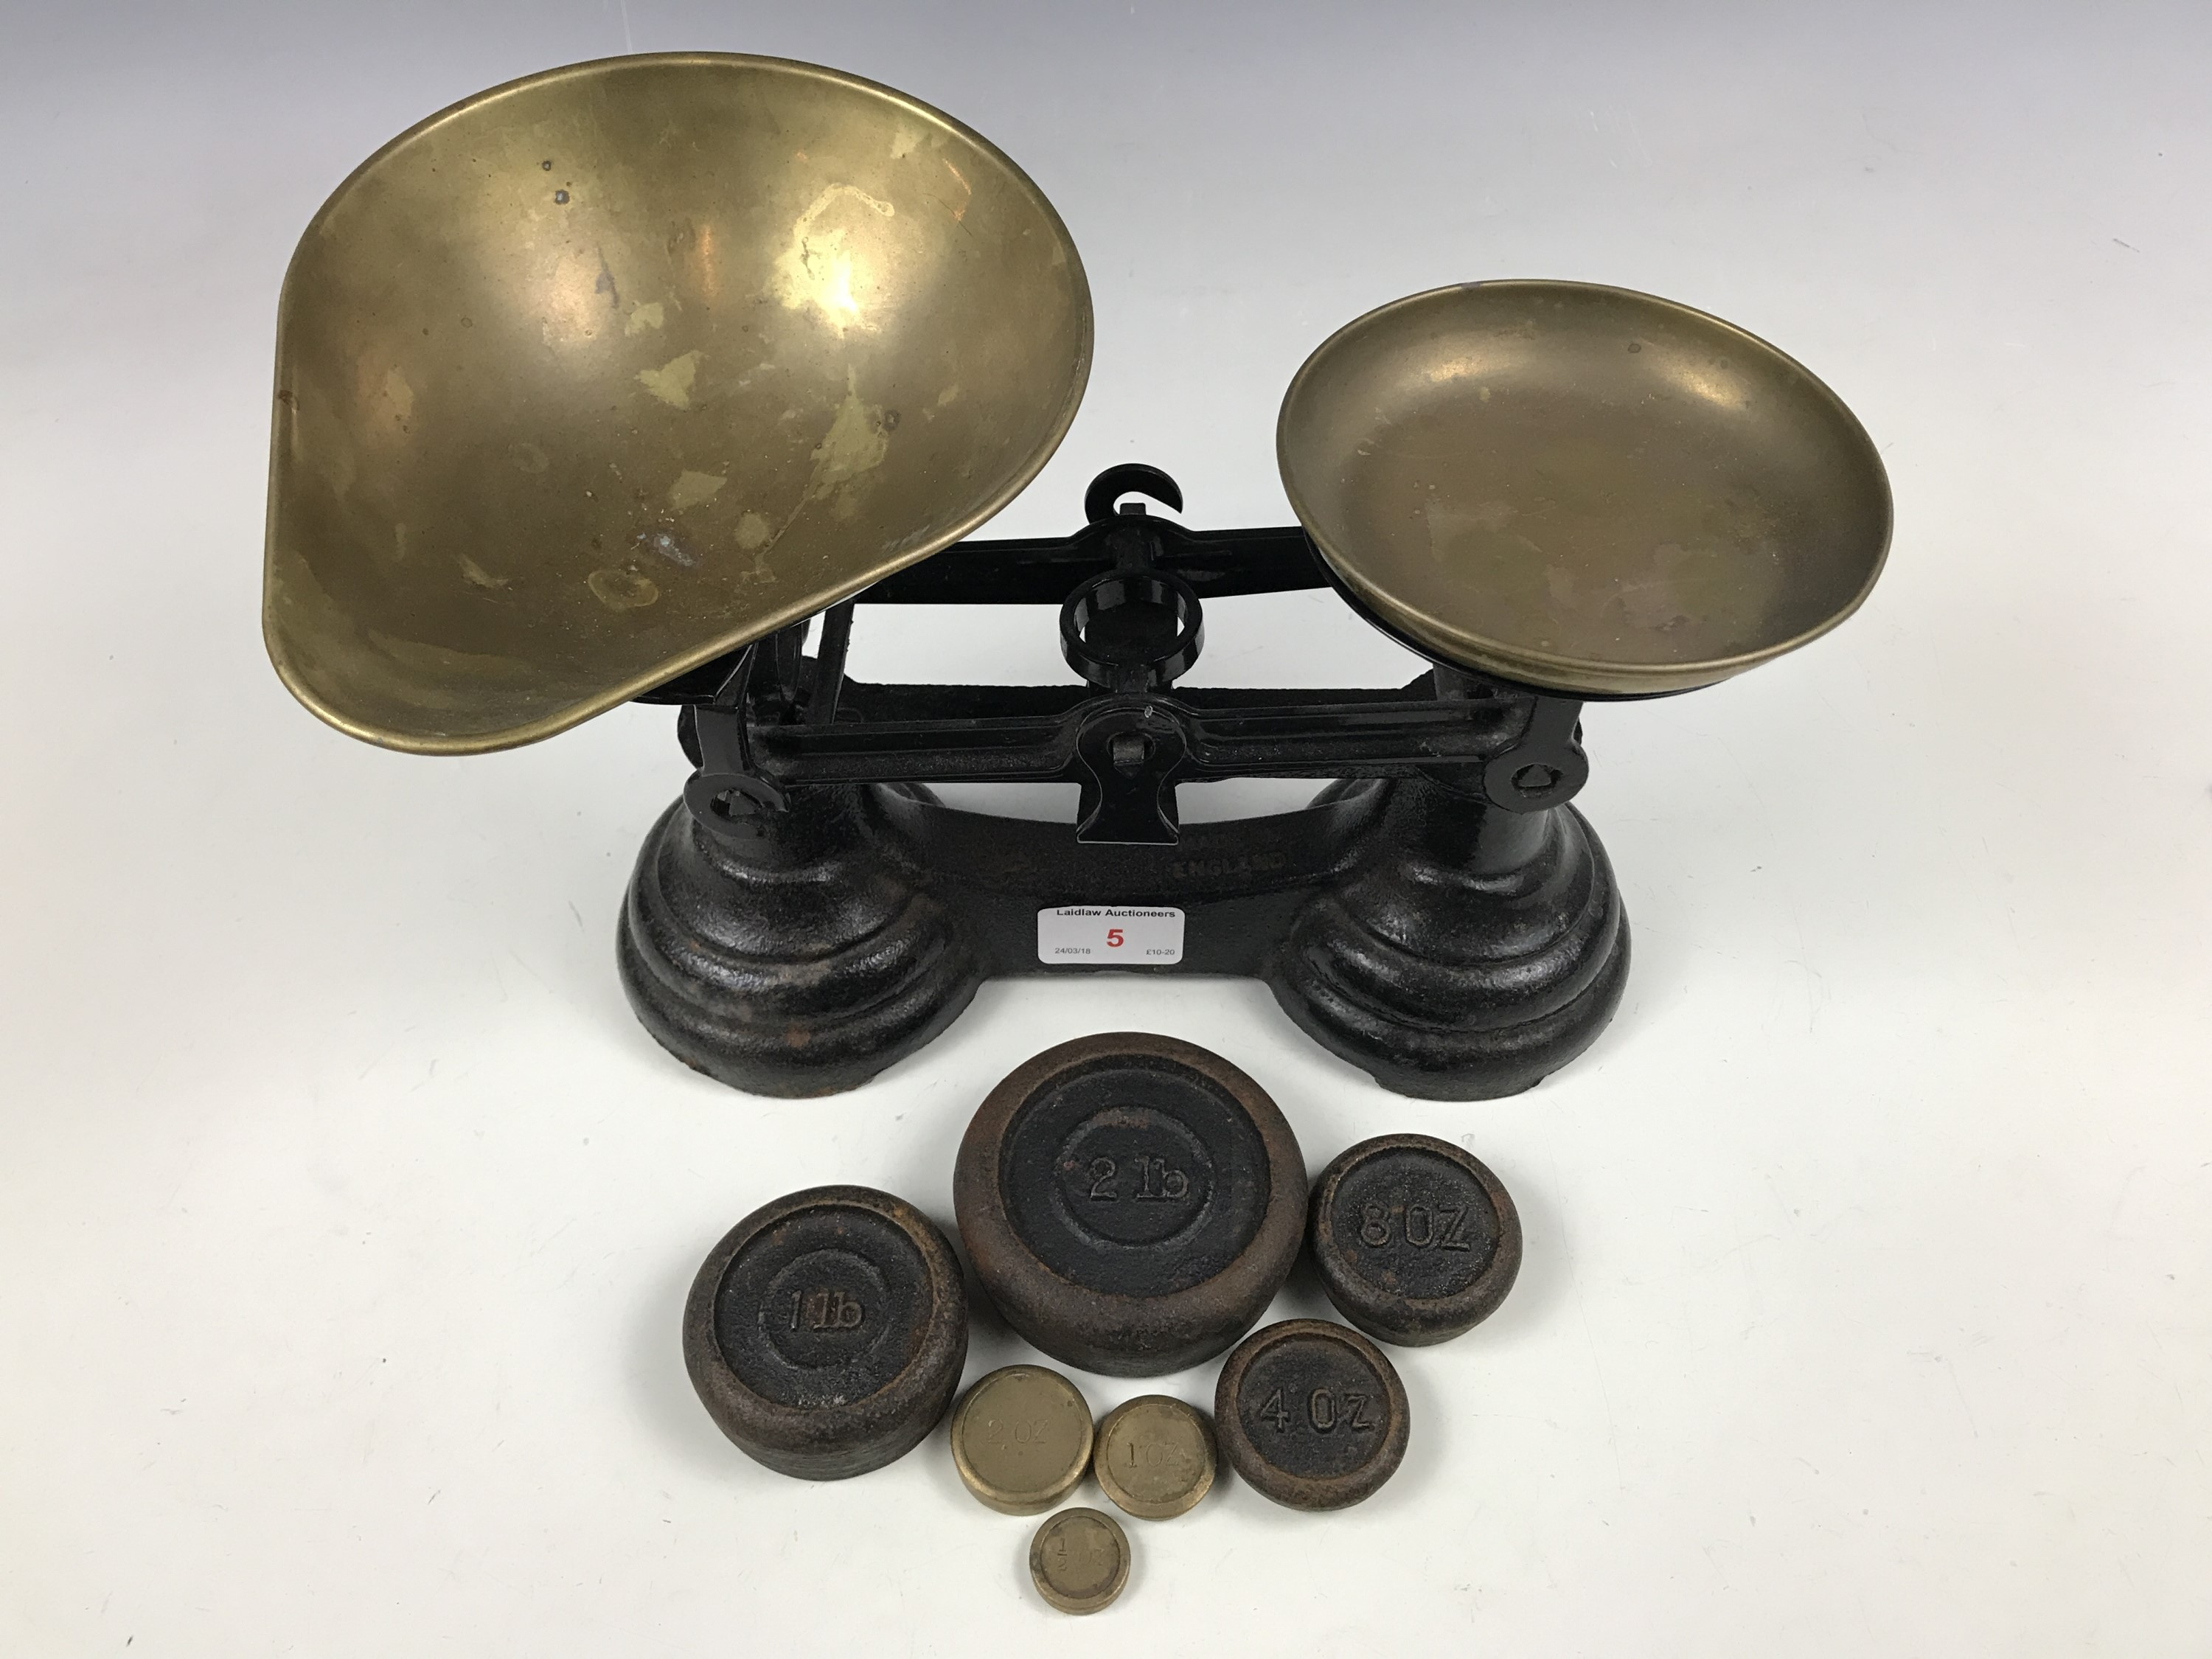 Lot 5 - A vintage set of kitchen scales and weights